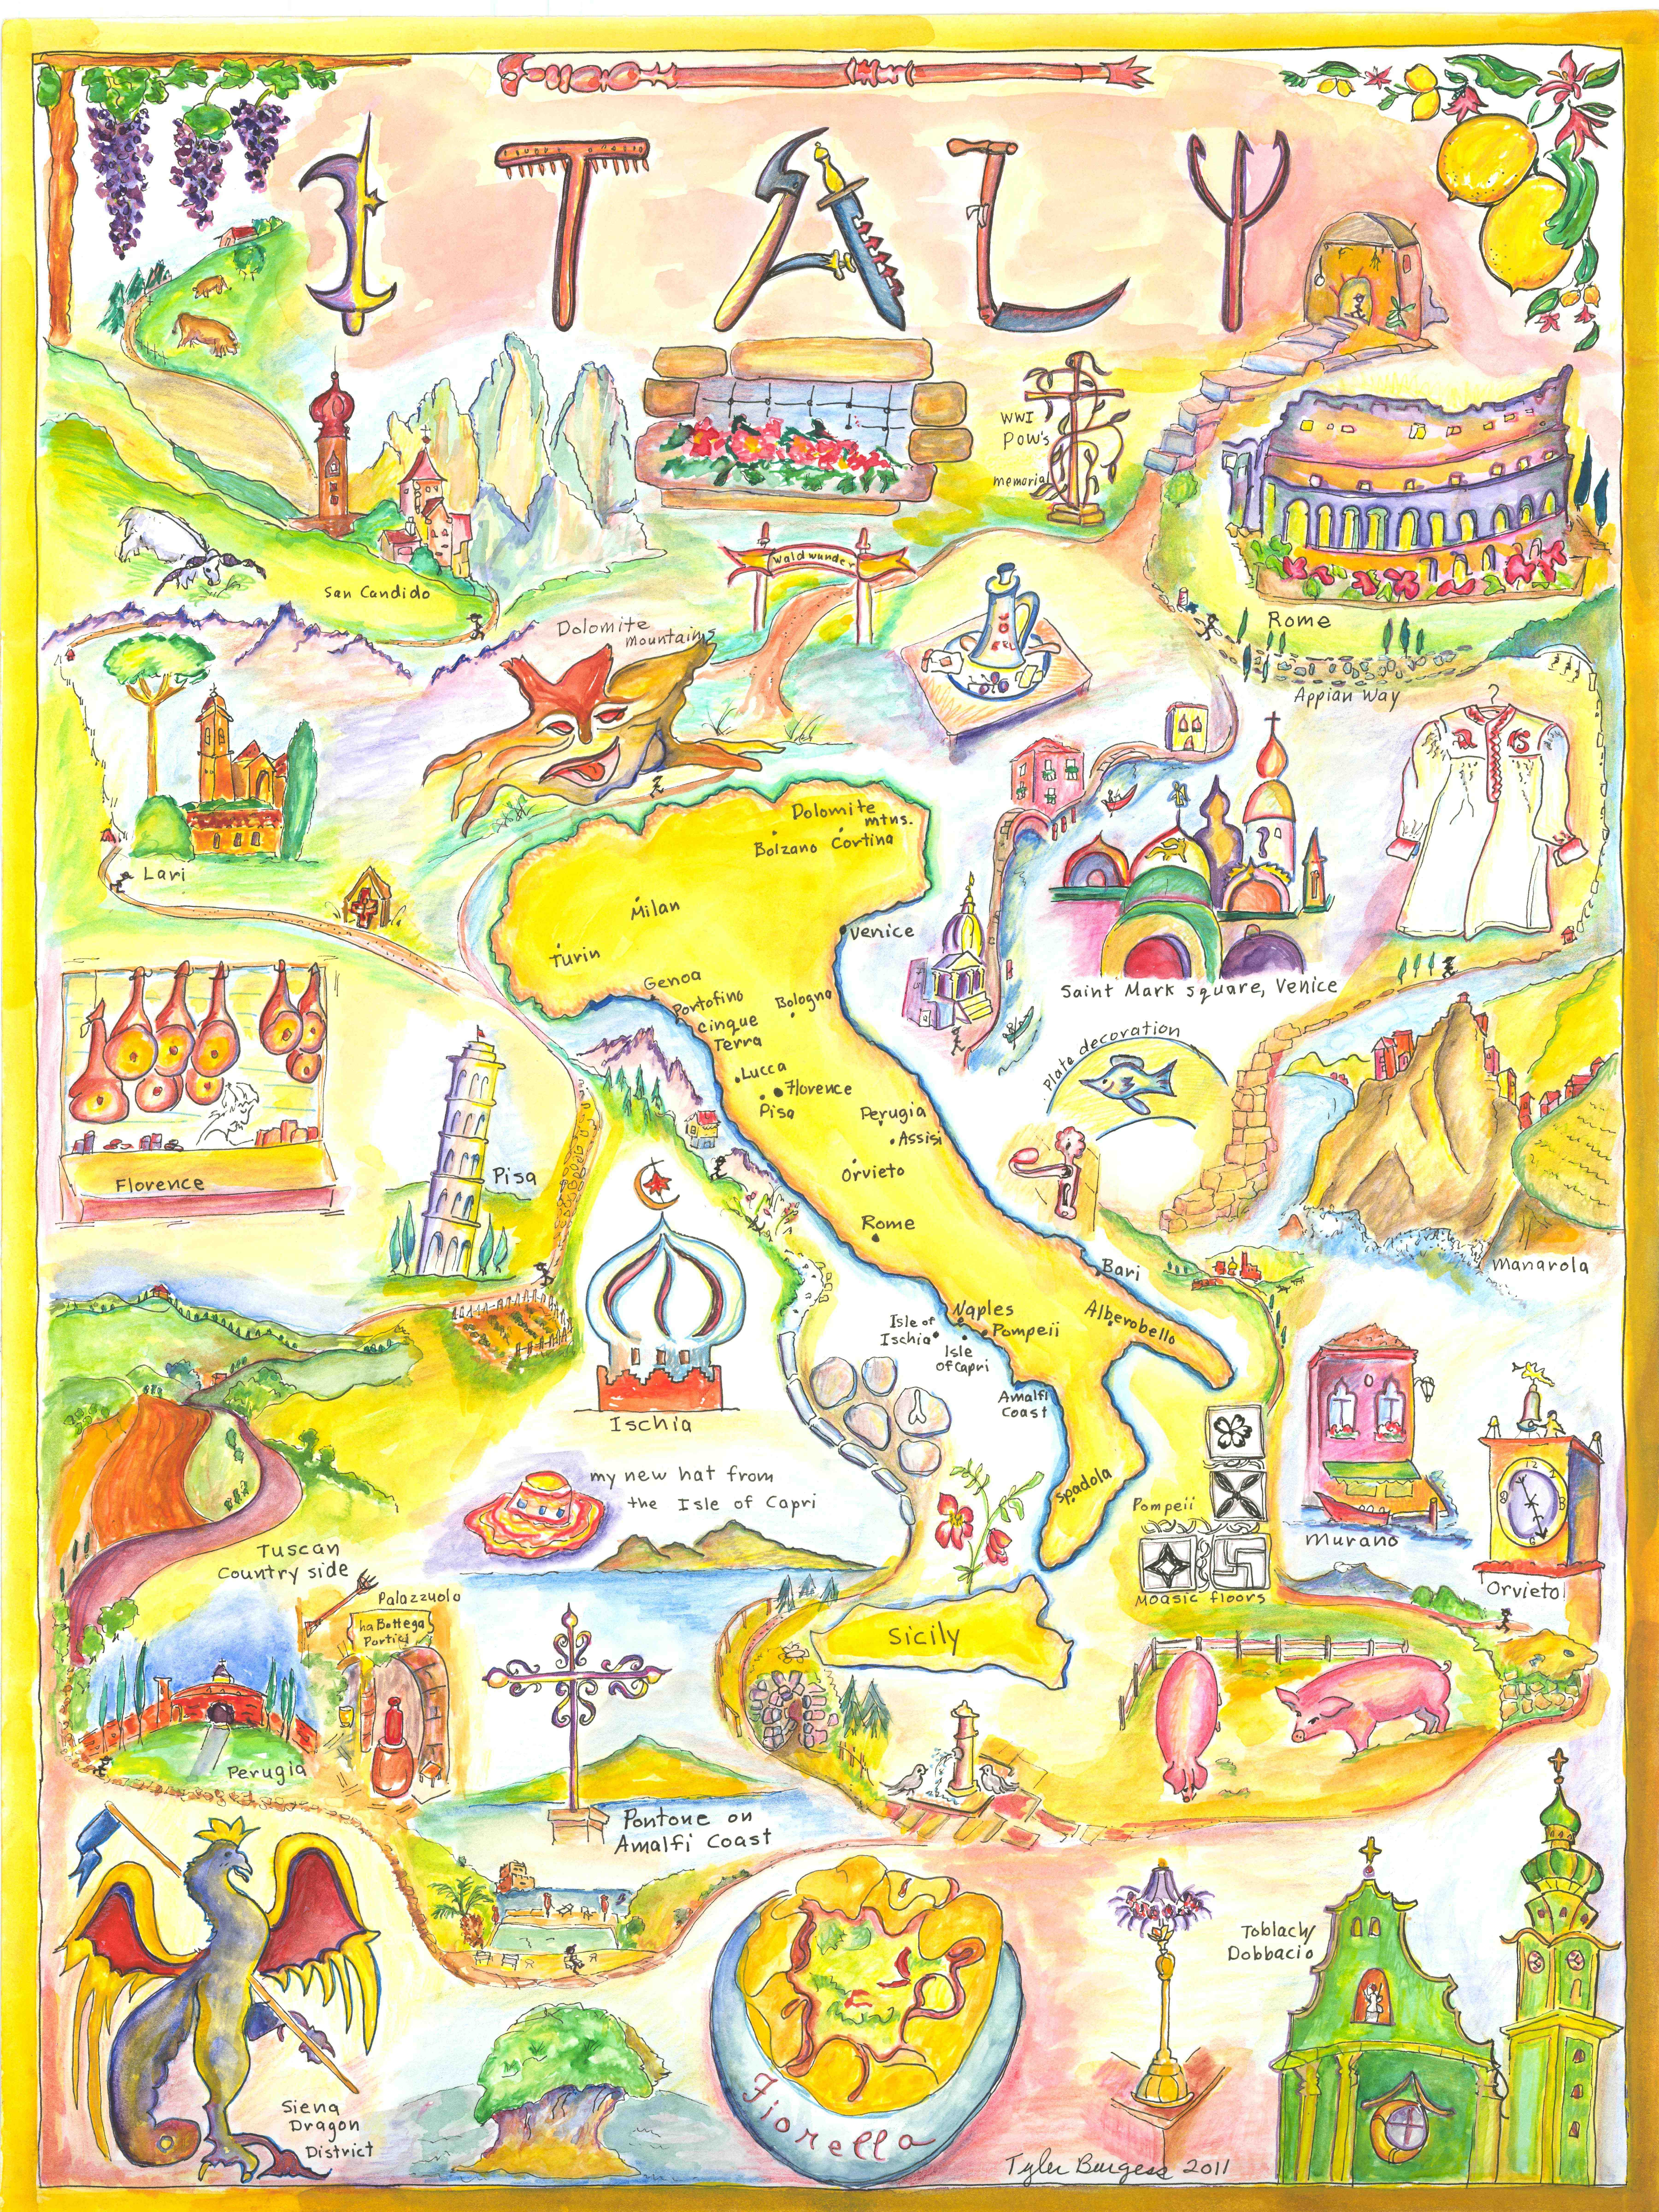 Italy map see map details from walk with me created 3 1 2011